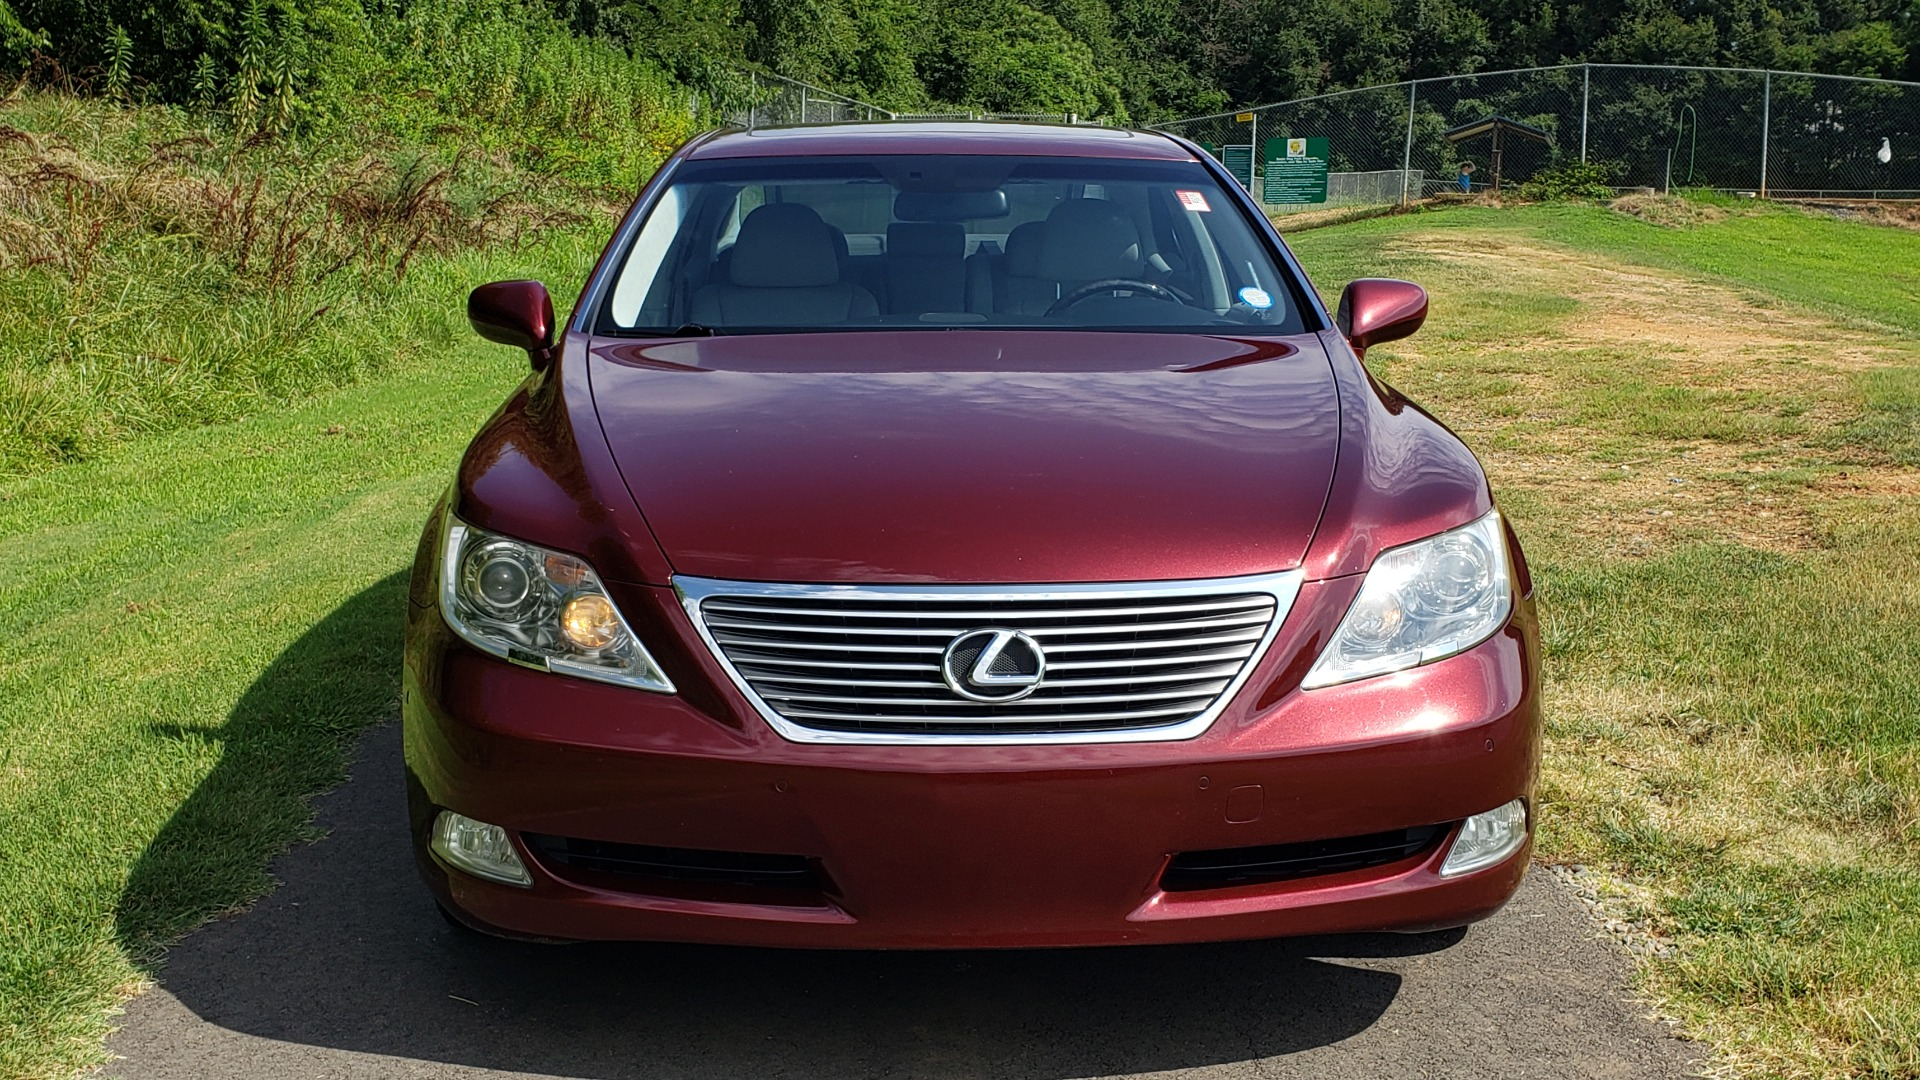 Used 2007 Lexus LS 460 LWB / LUX / NAV / SUNROOF / MARK LEVINSON SND / AIR SUSP for sale Sold at Formula Imports in Charlotte NC 28227 9